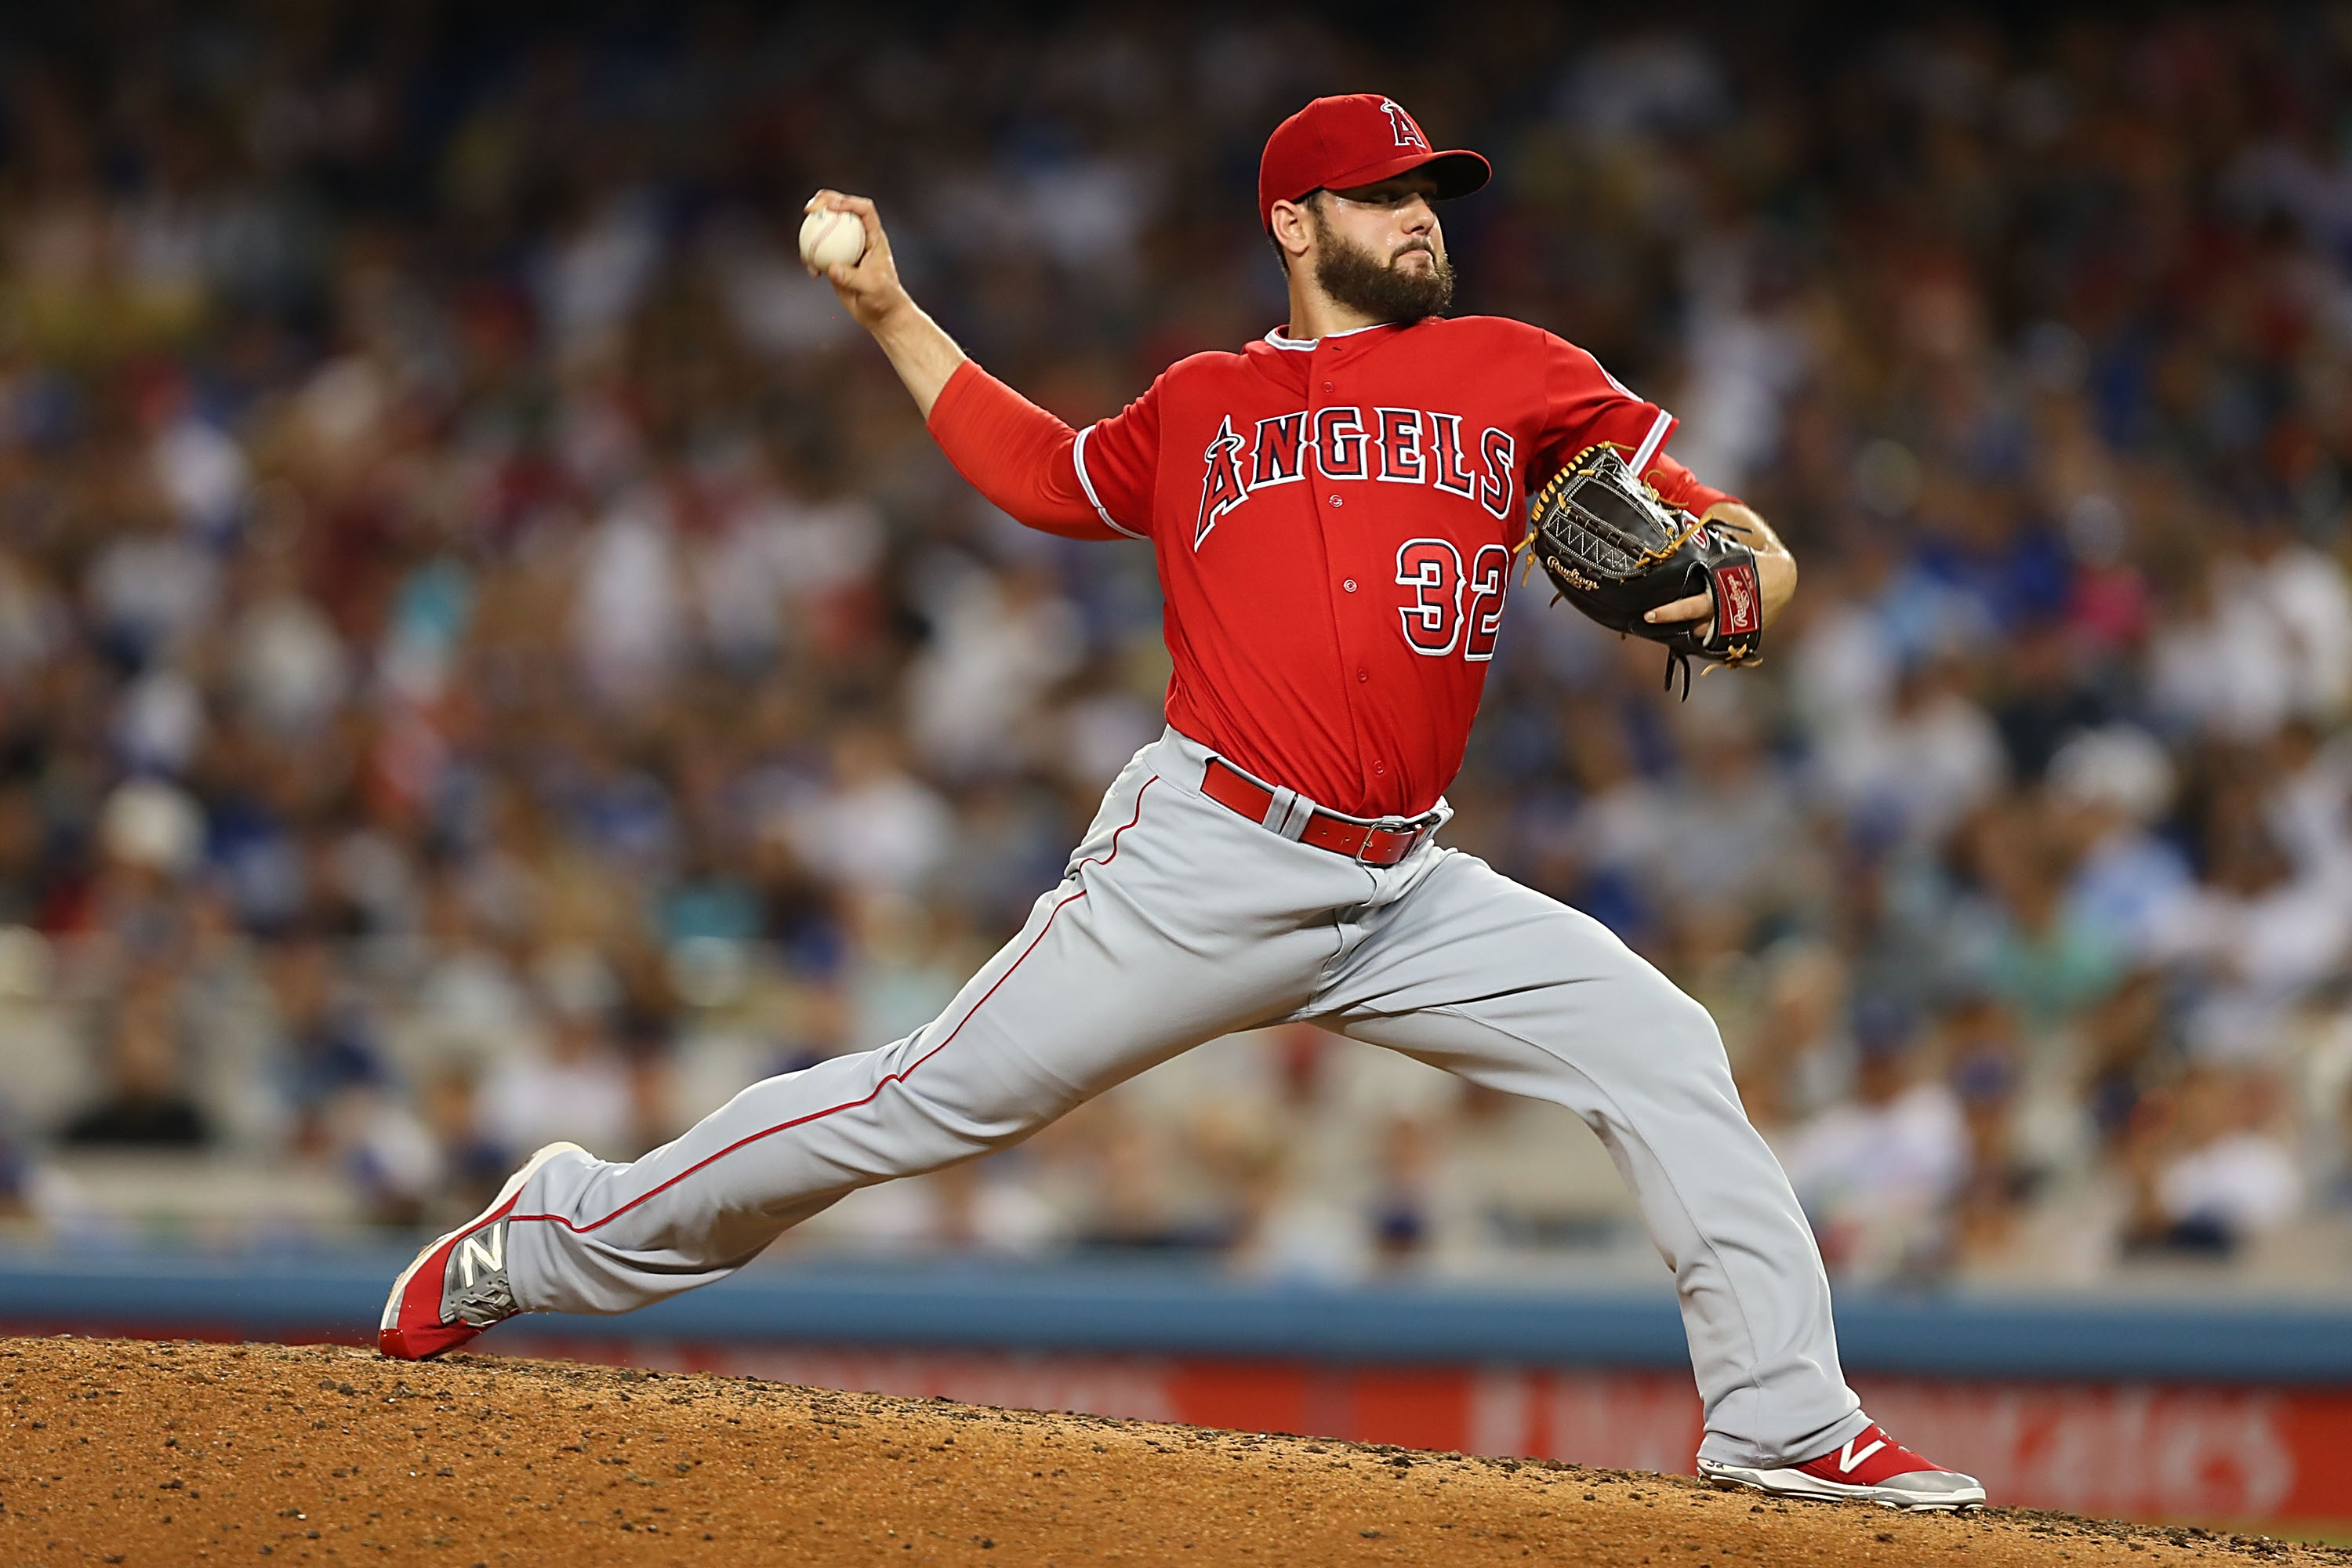 801575756-los-angeles-angels-of-anaheim-v-los-angeles-dodgers.jpg